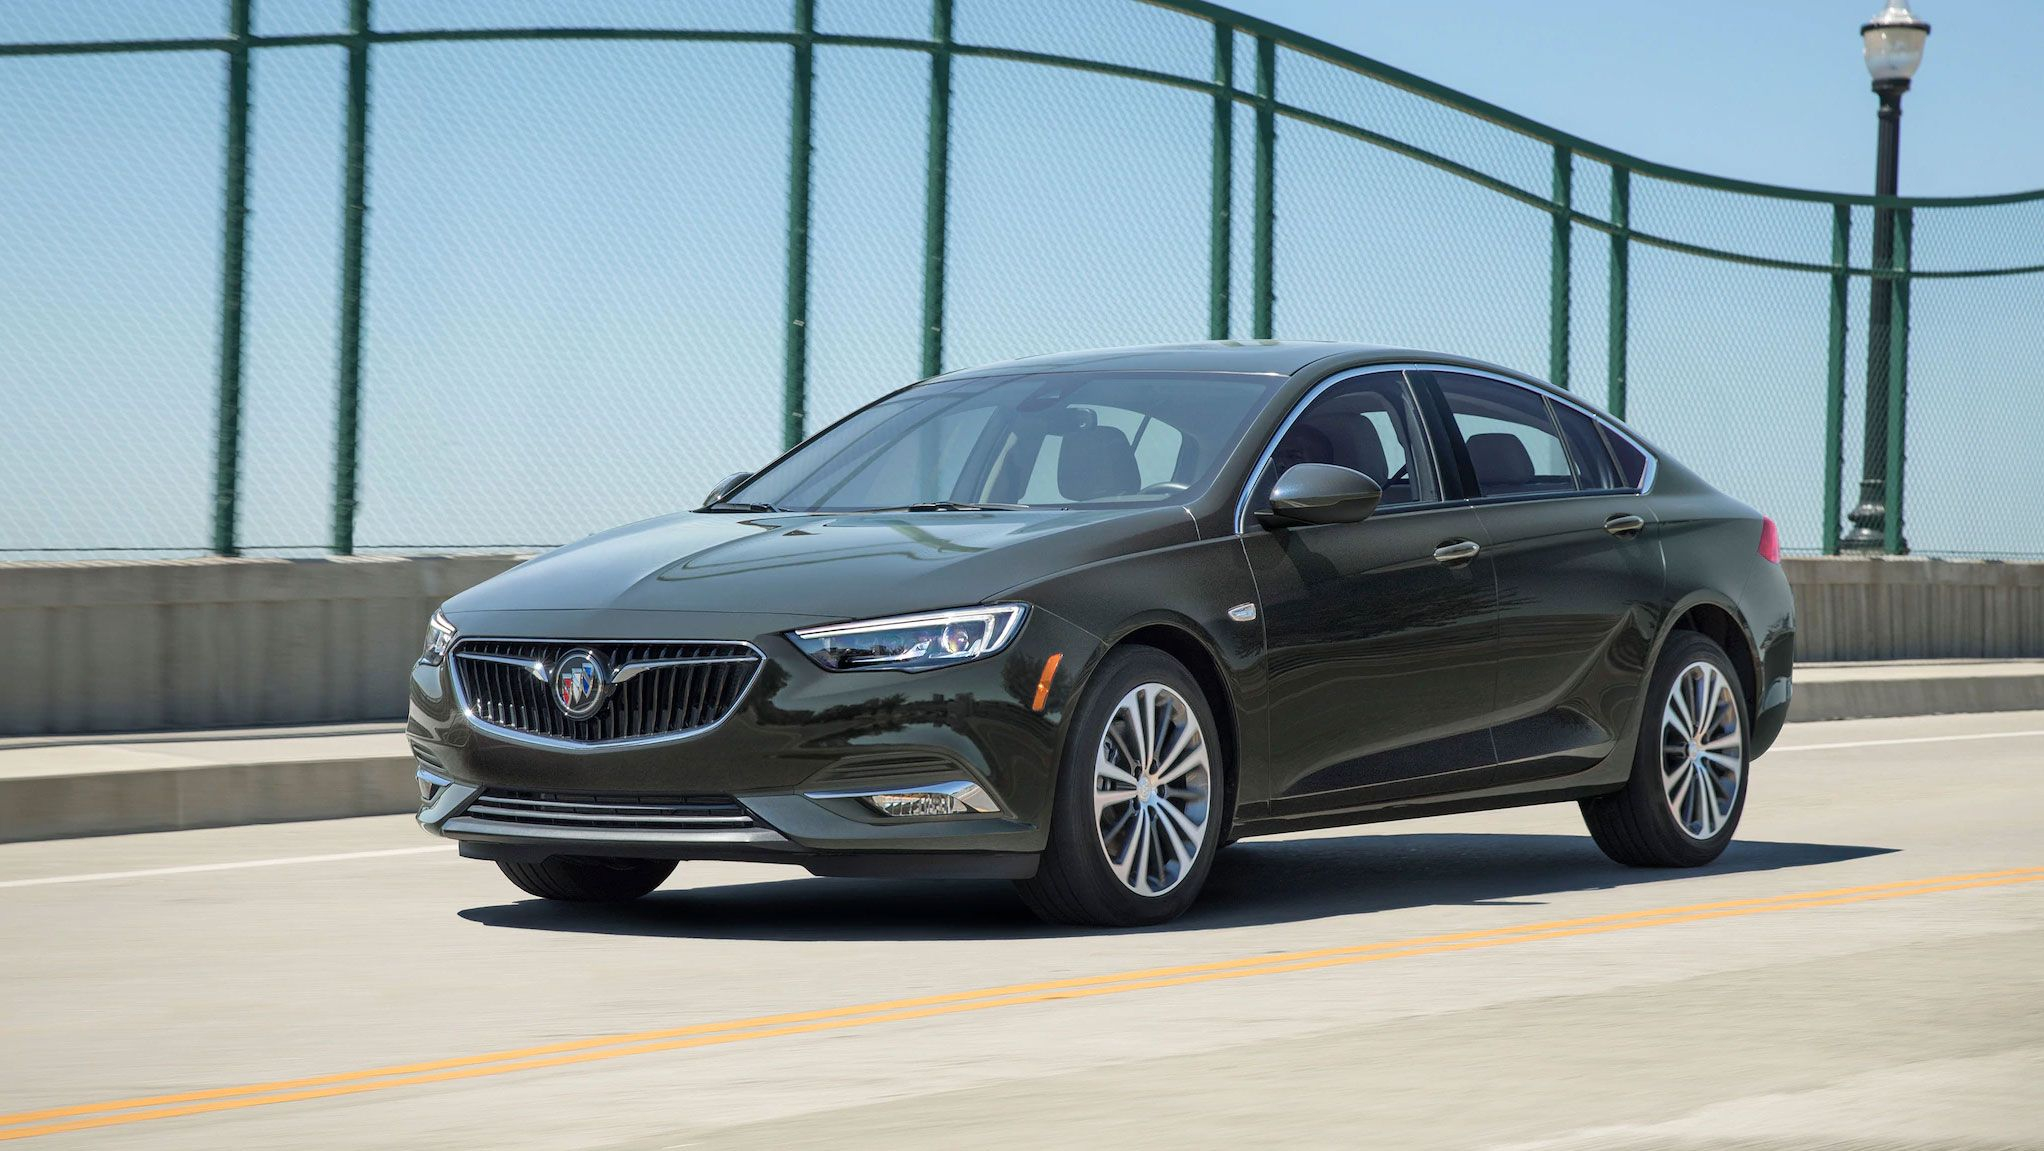 2020 Buick Regal Sportback Review, Pricing, And Specs New 2021 Buick Regal Reviews, Images, Price